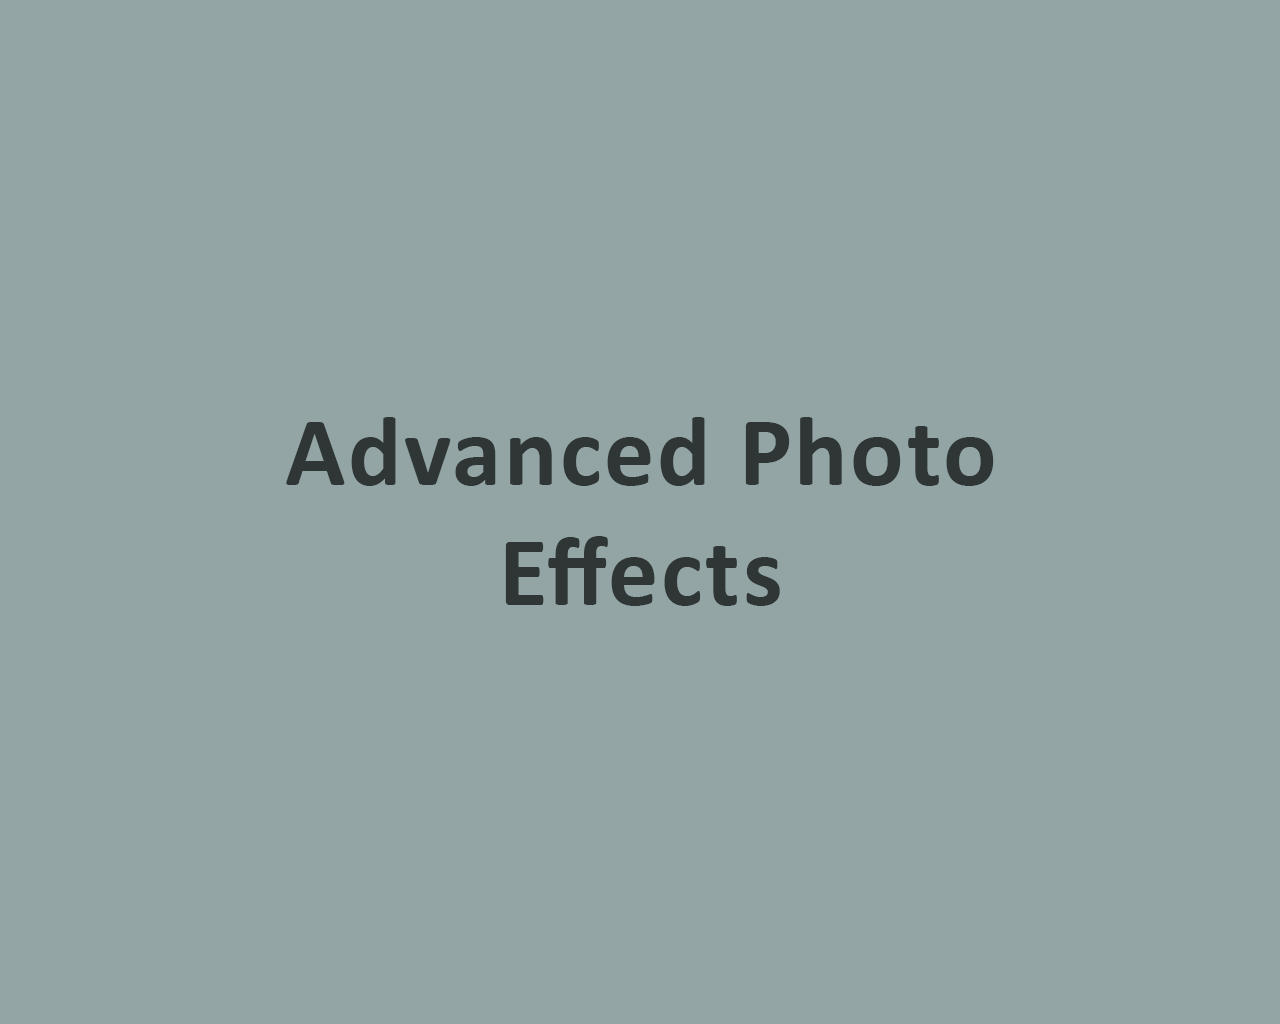 Advanced Photo Effects by odiusfly - 105974